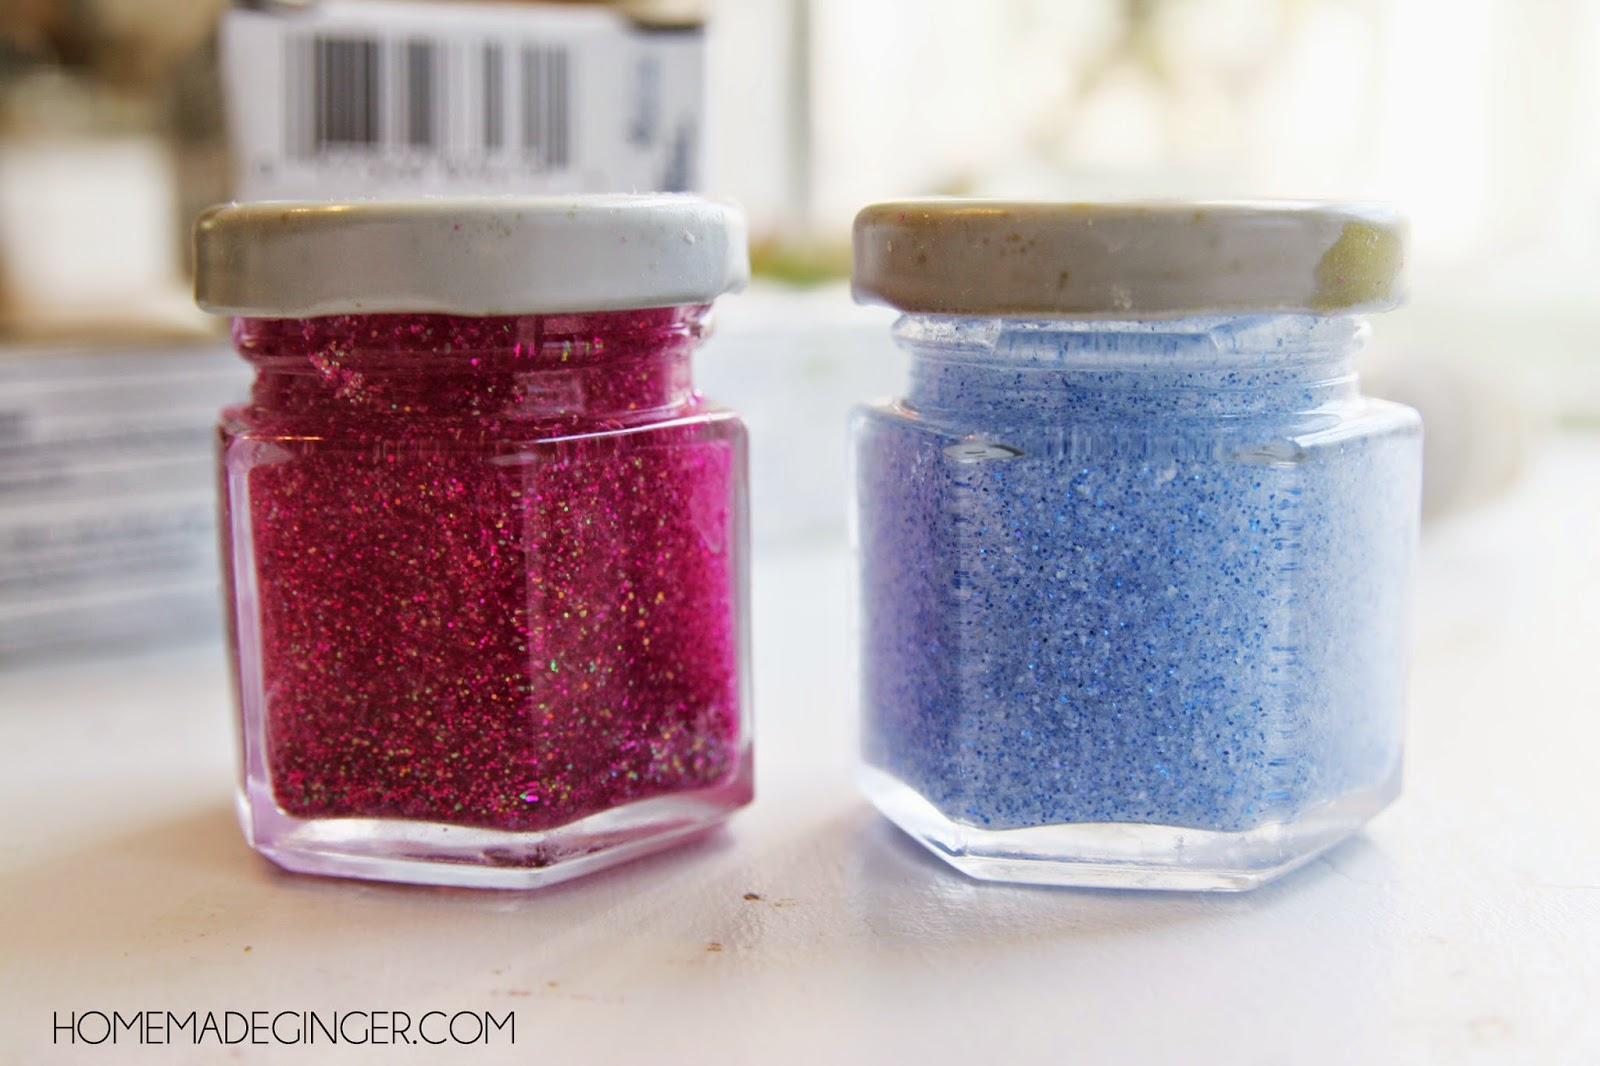 Toothbrush timers. A great craft for kids using glitter, glue and water!